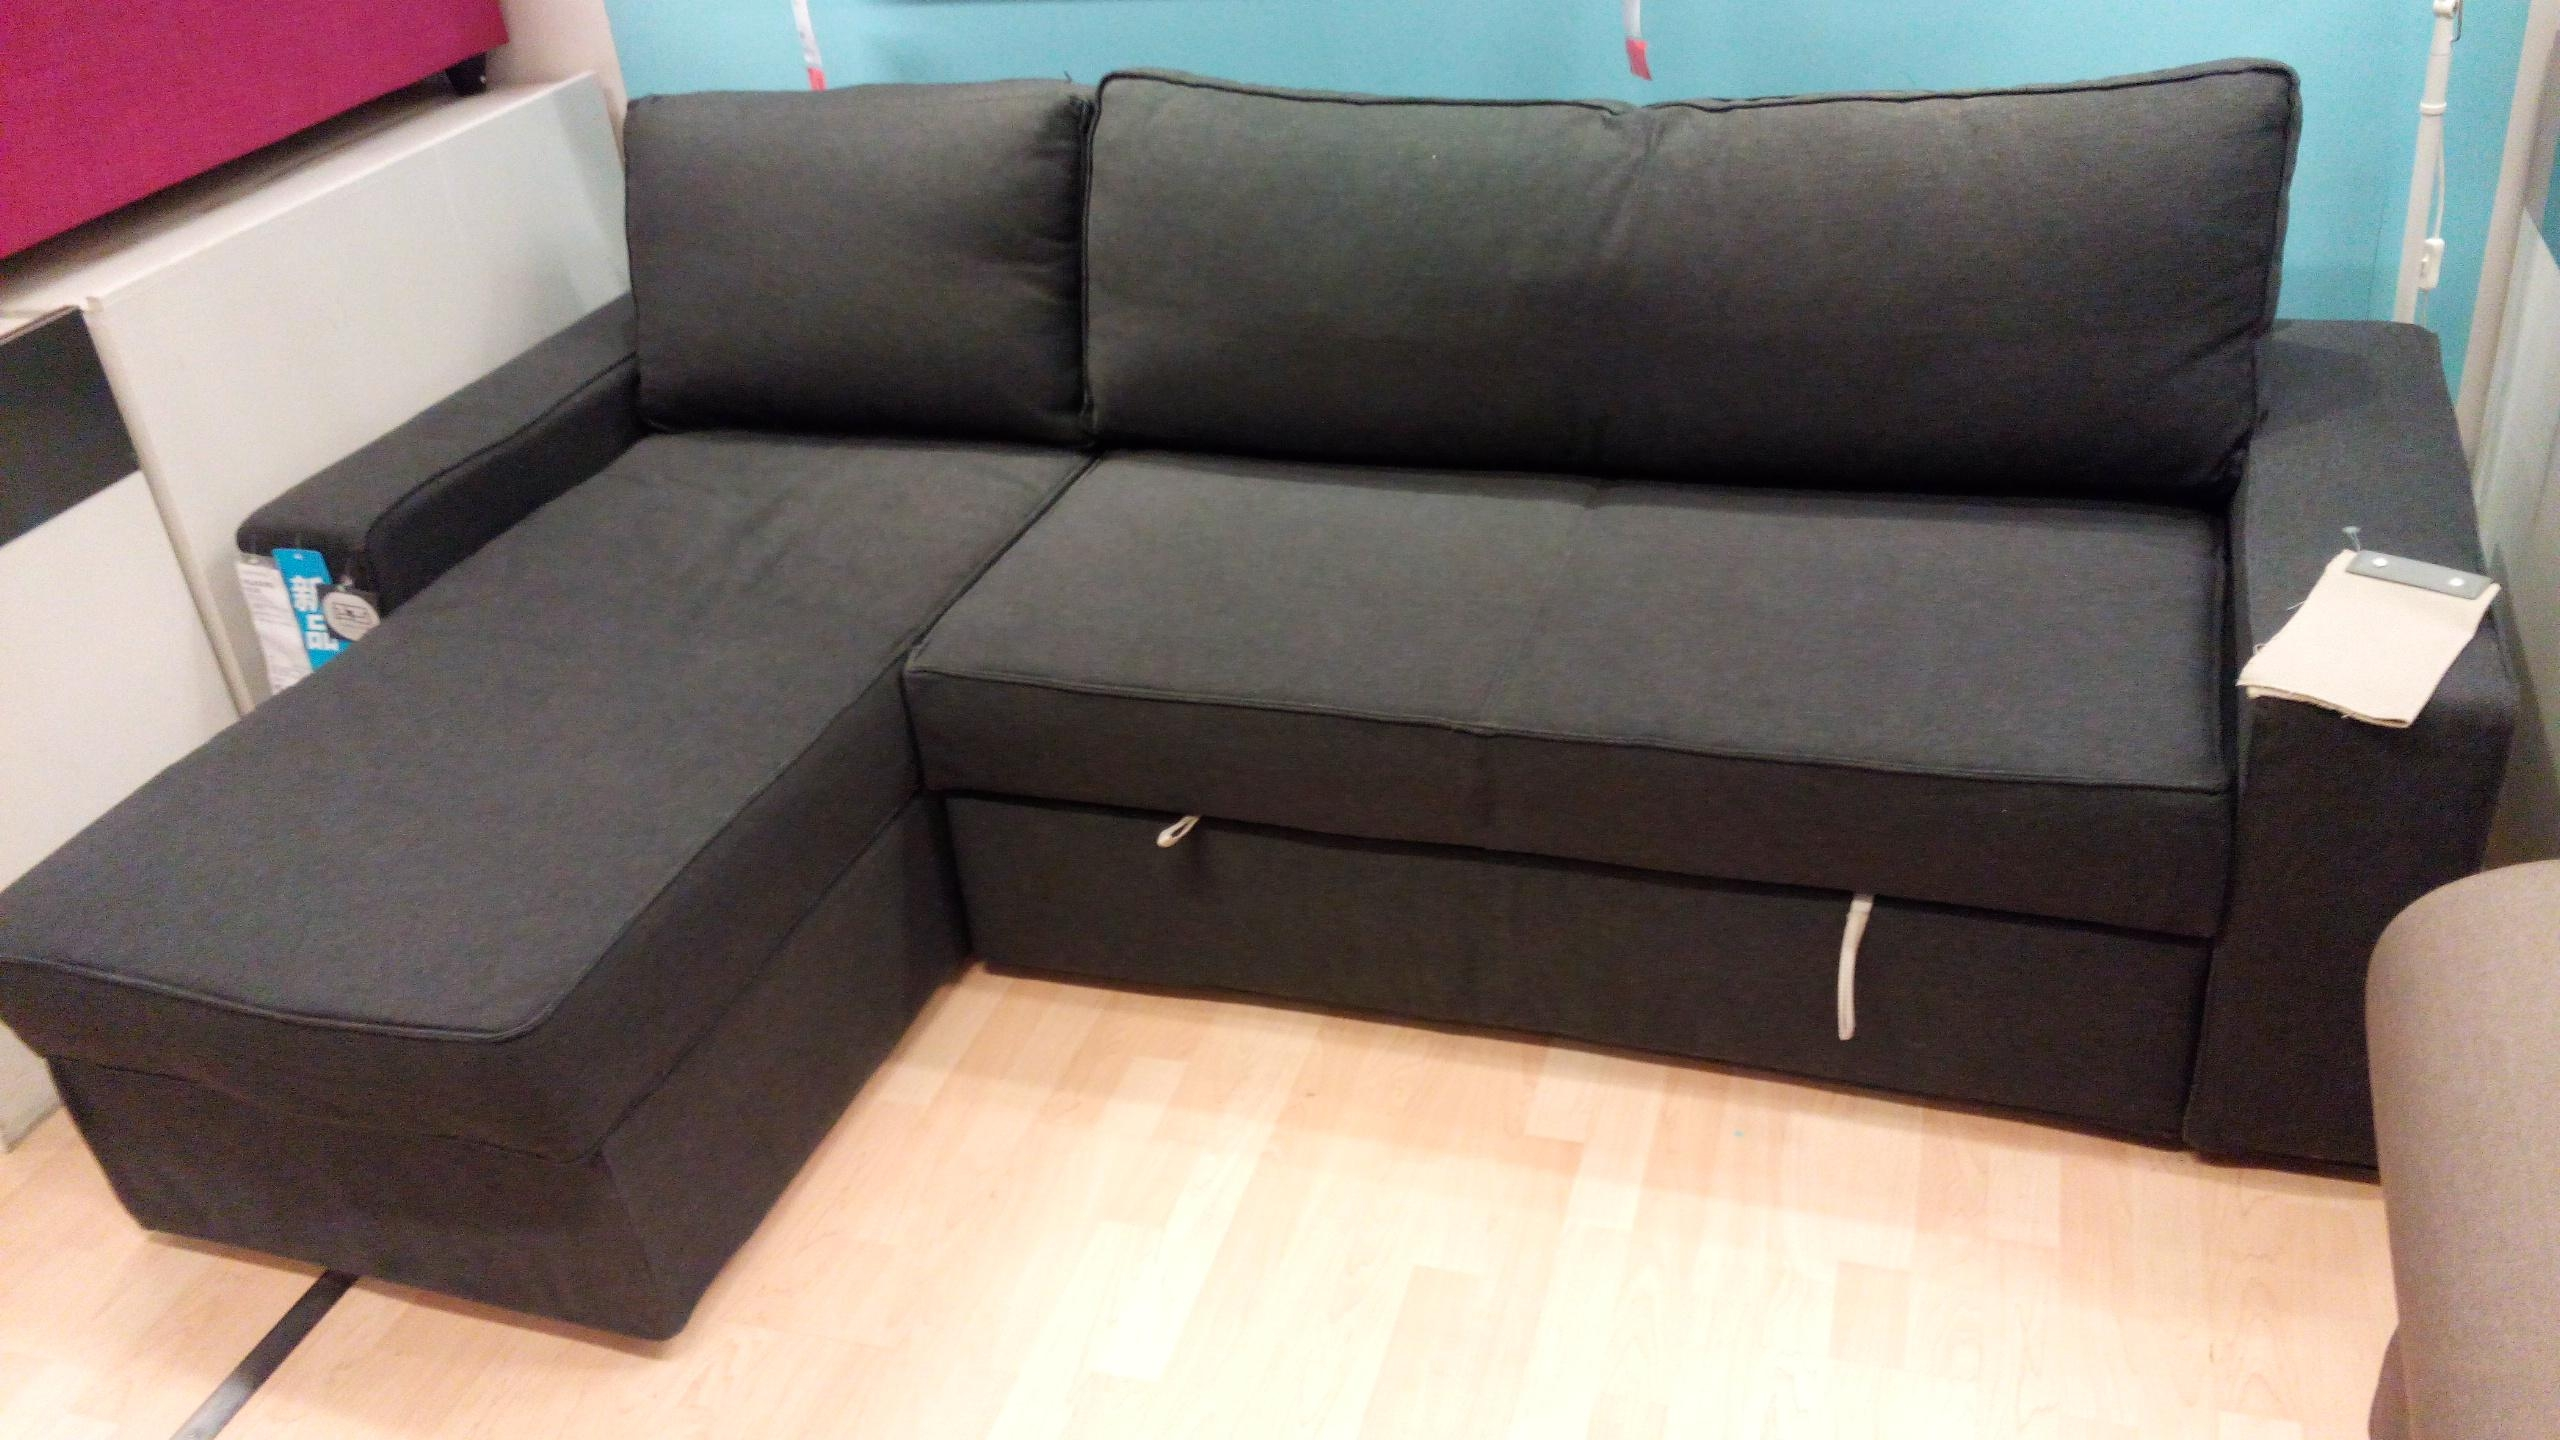 manstad sofa bed 299 sectional 20 top with storage from ikea ideas